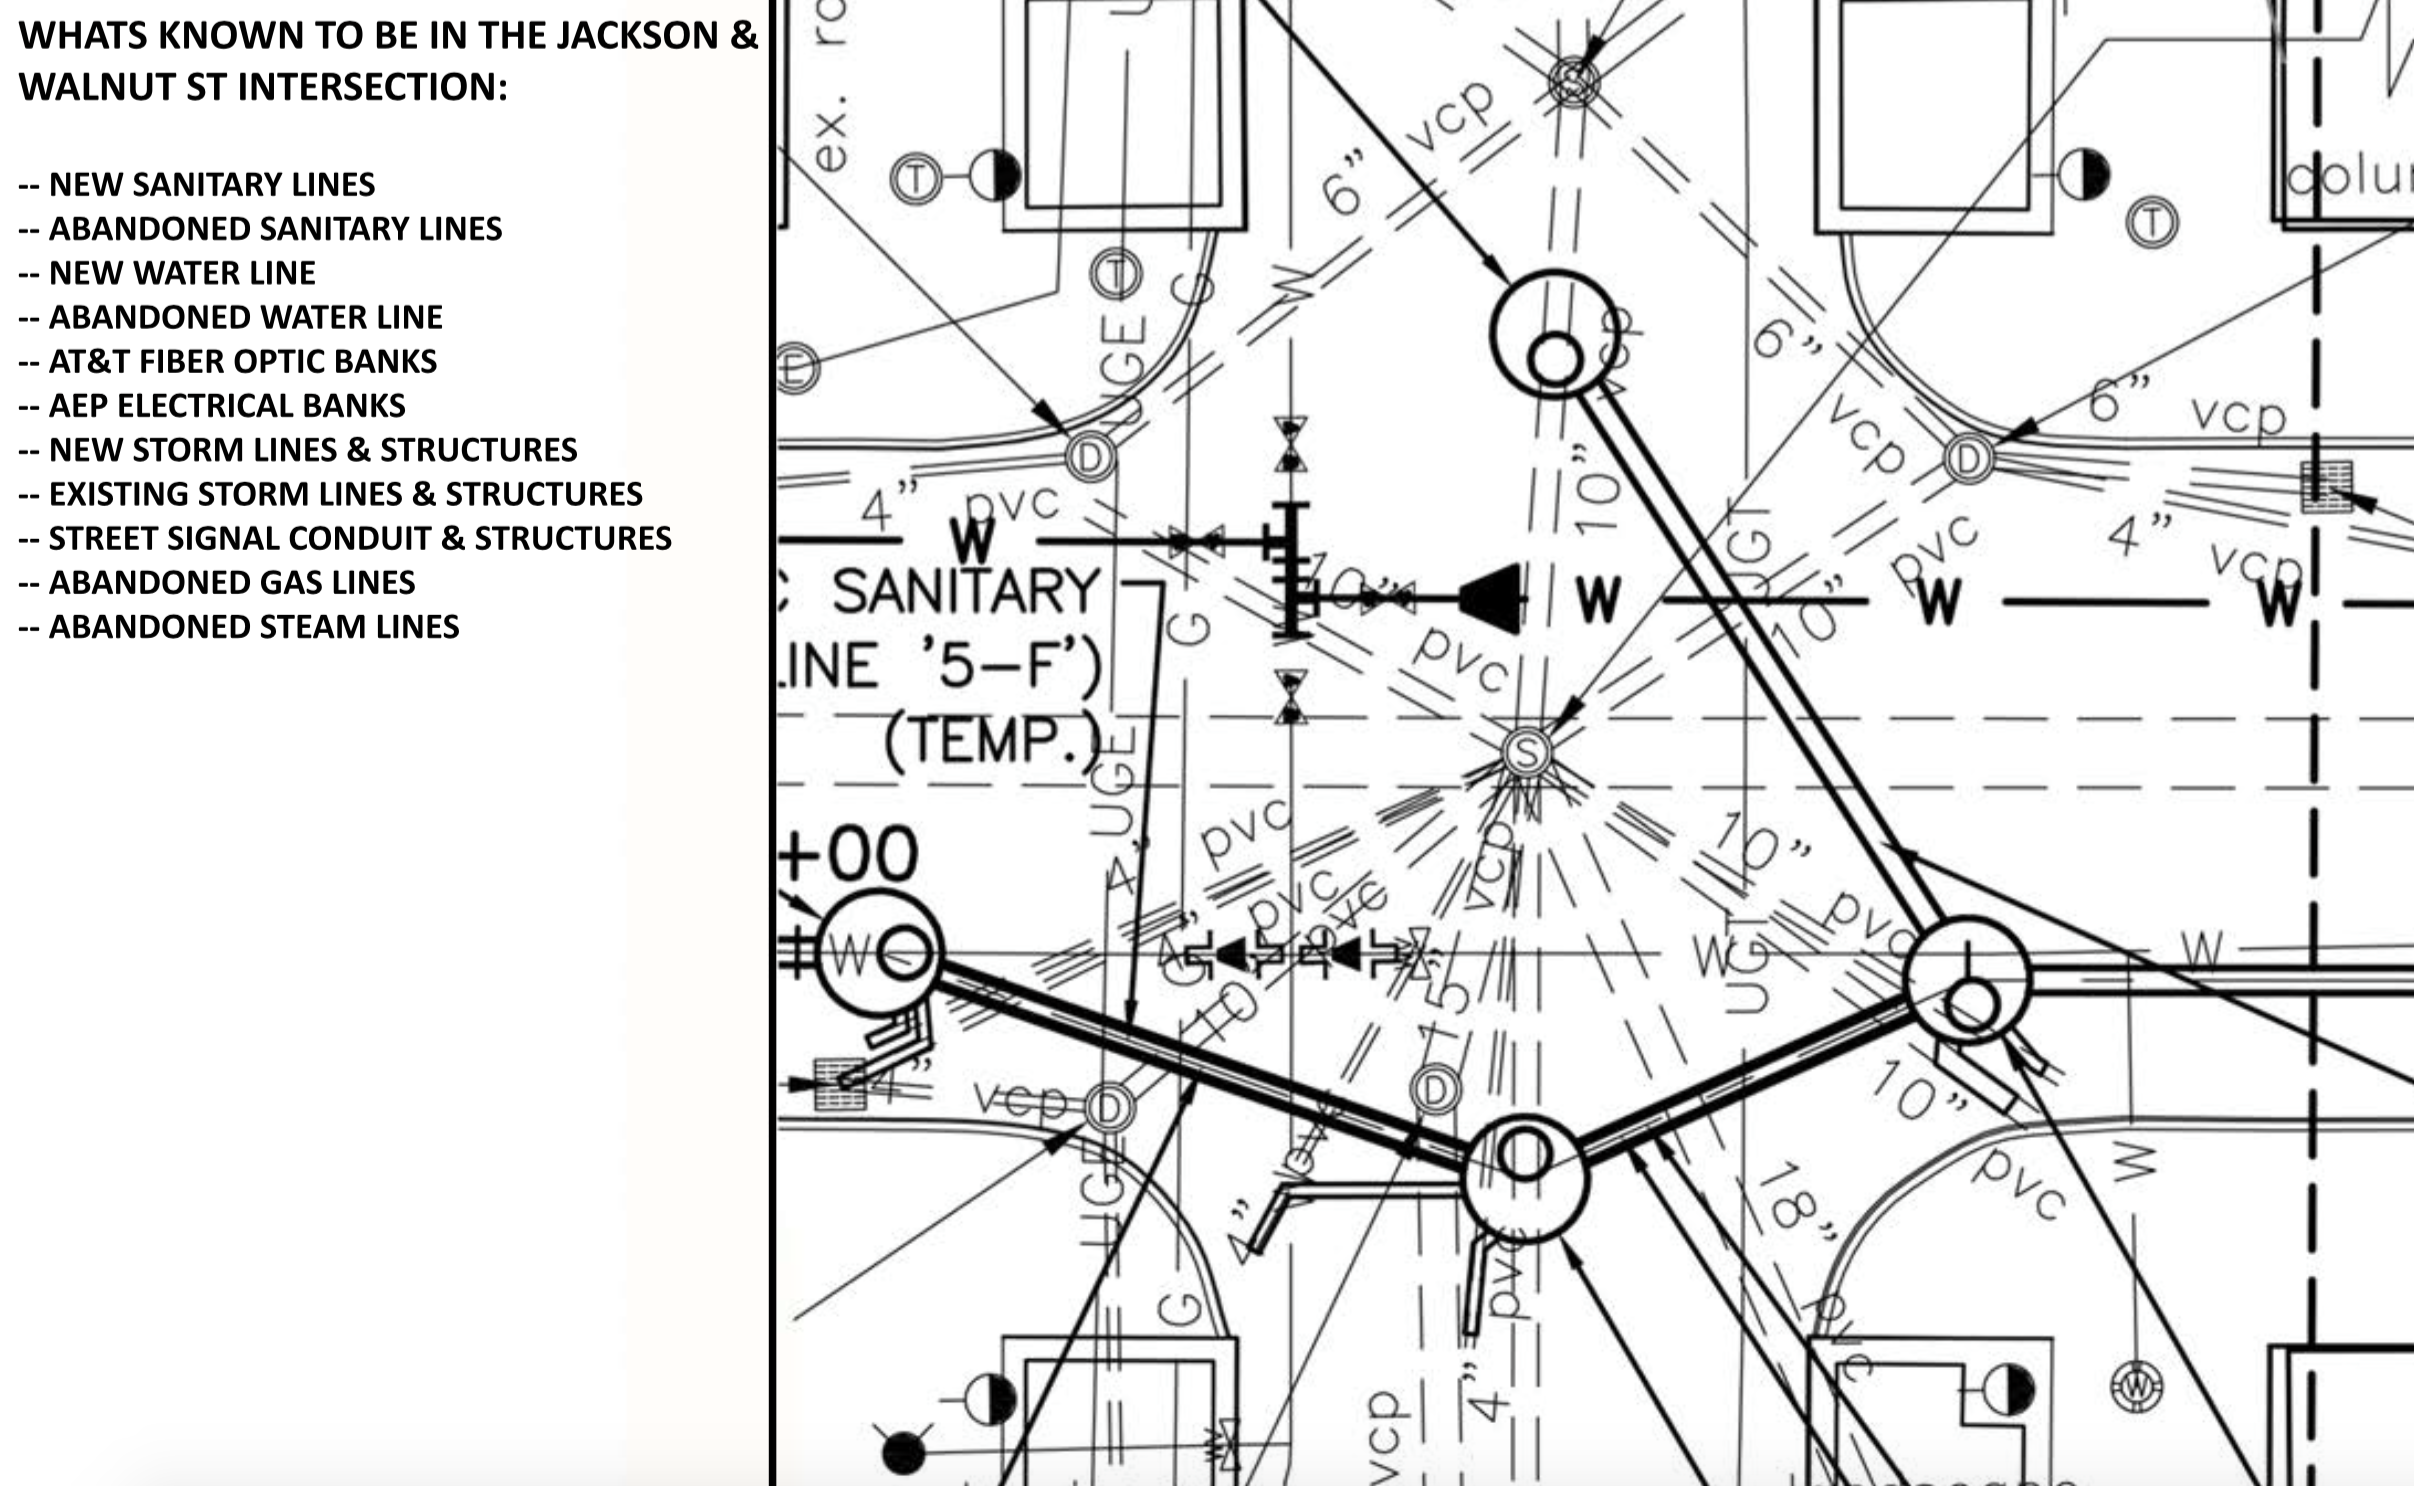 Muncie News Wiring Schematic Diagram October 2014 Nevertheless In Of 2015 The Work Was Packed On Schedule And All Roads Were Opened Up For Holiday Shopping Season